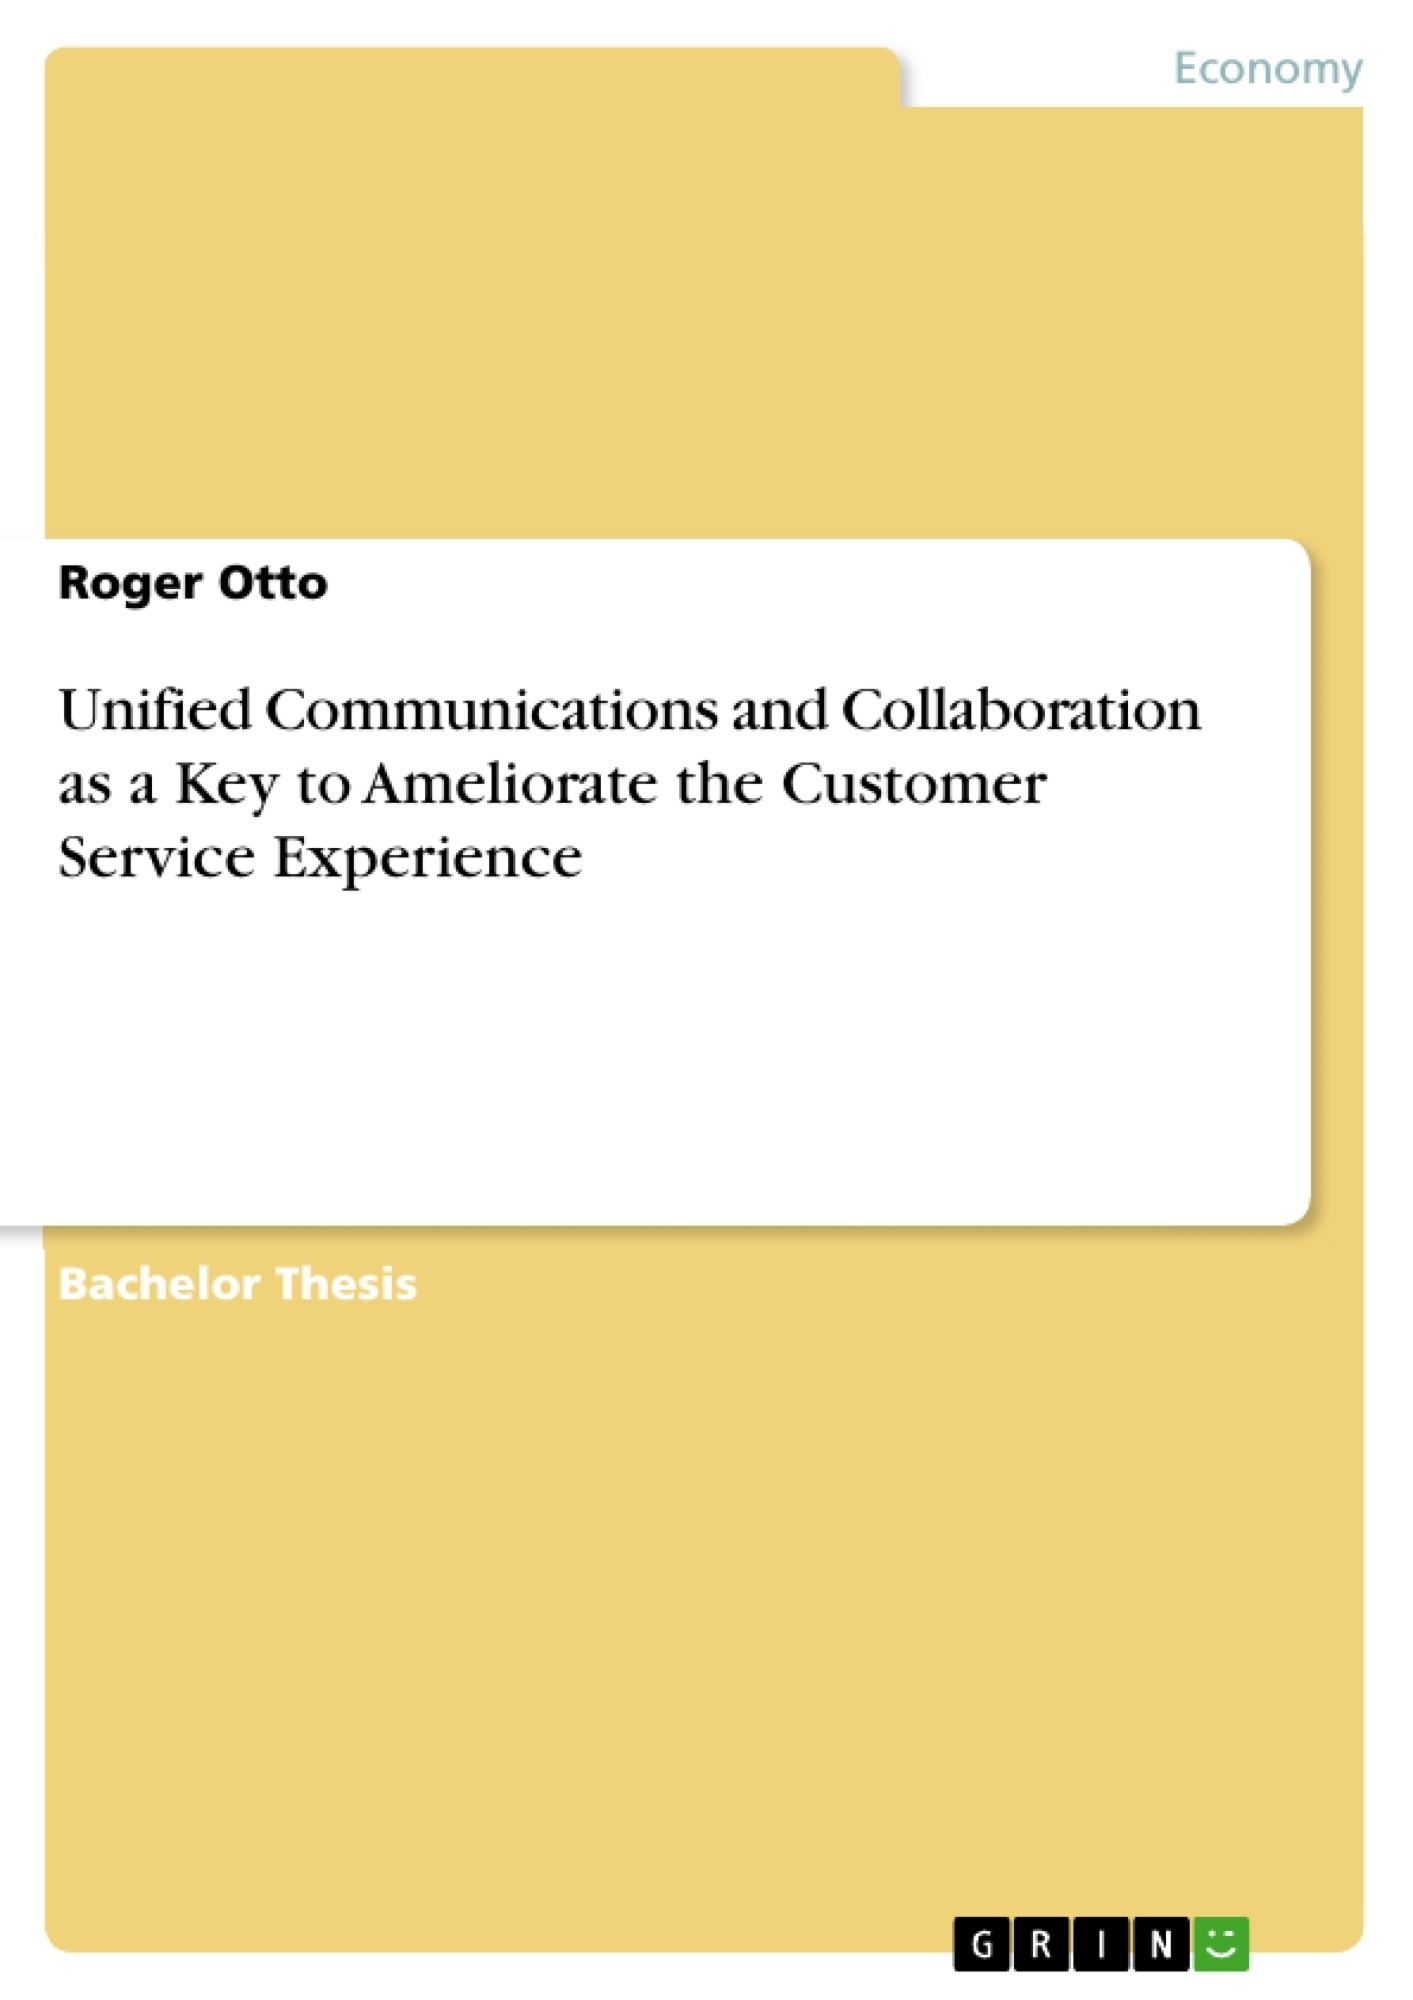 Title: Unified Communications and Collaboration as a Key to Ameliorate the Customer Service Experience